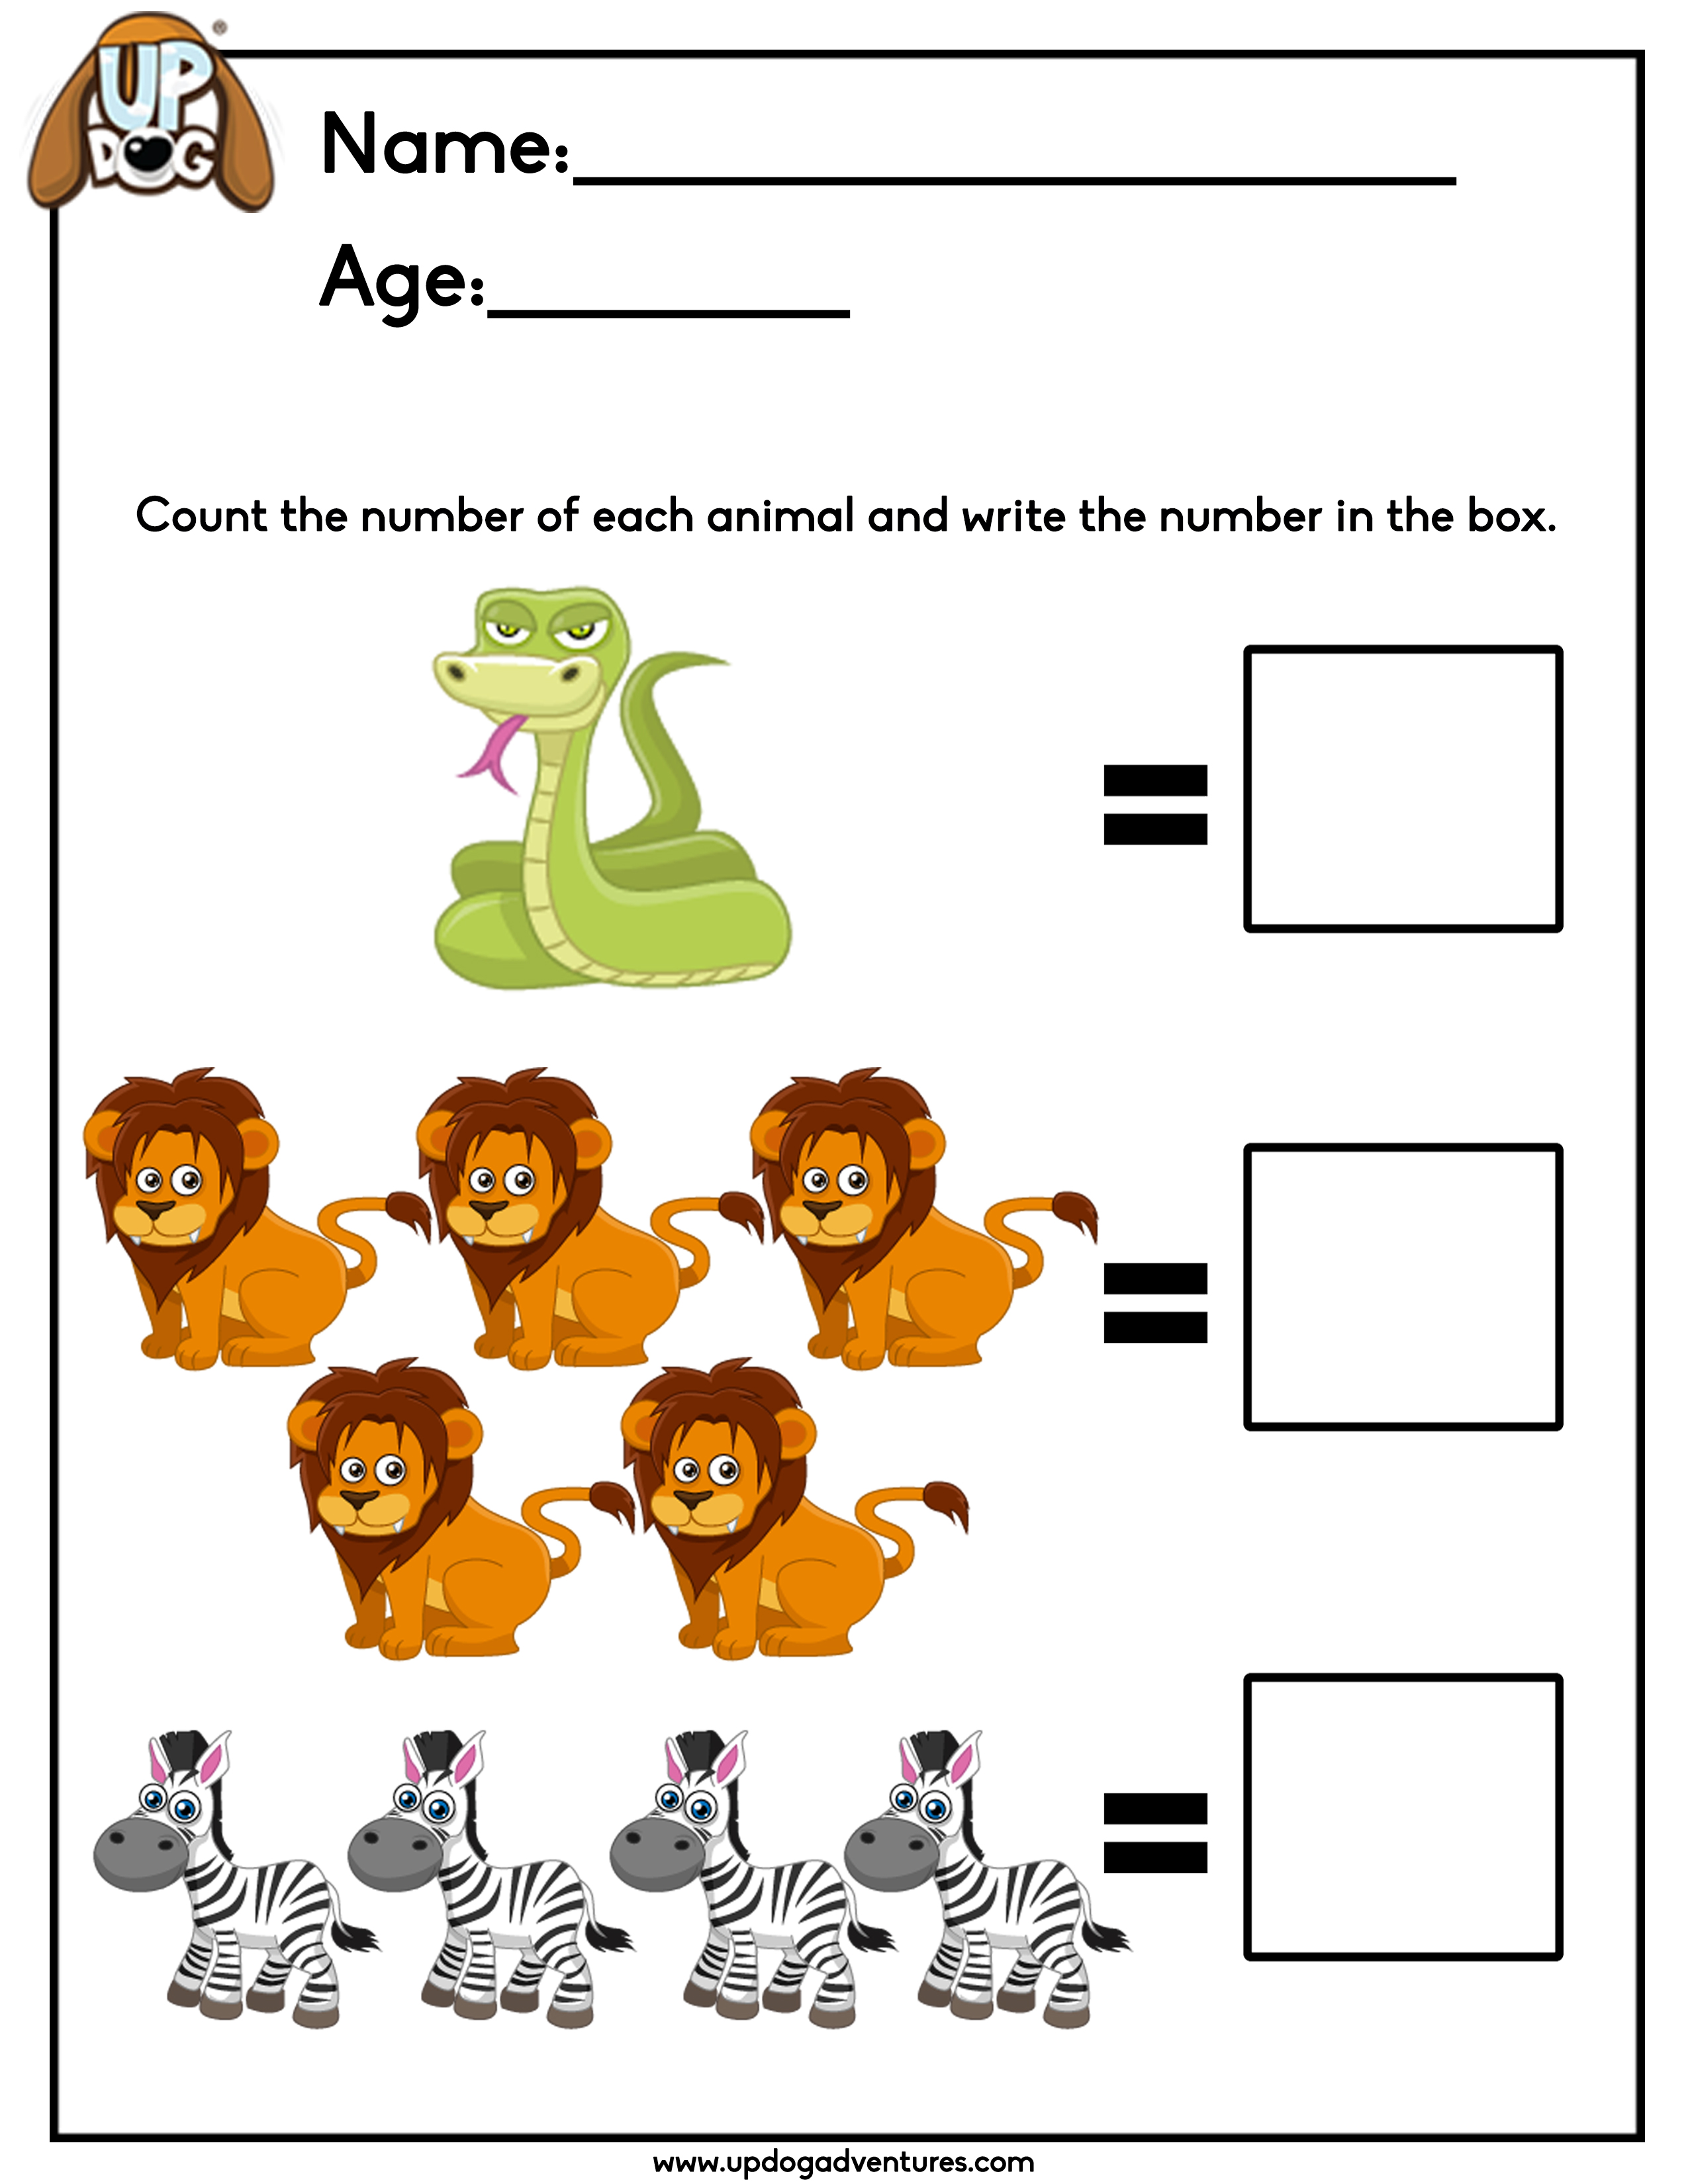 mathematics-count-the-animals-3